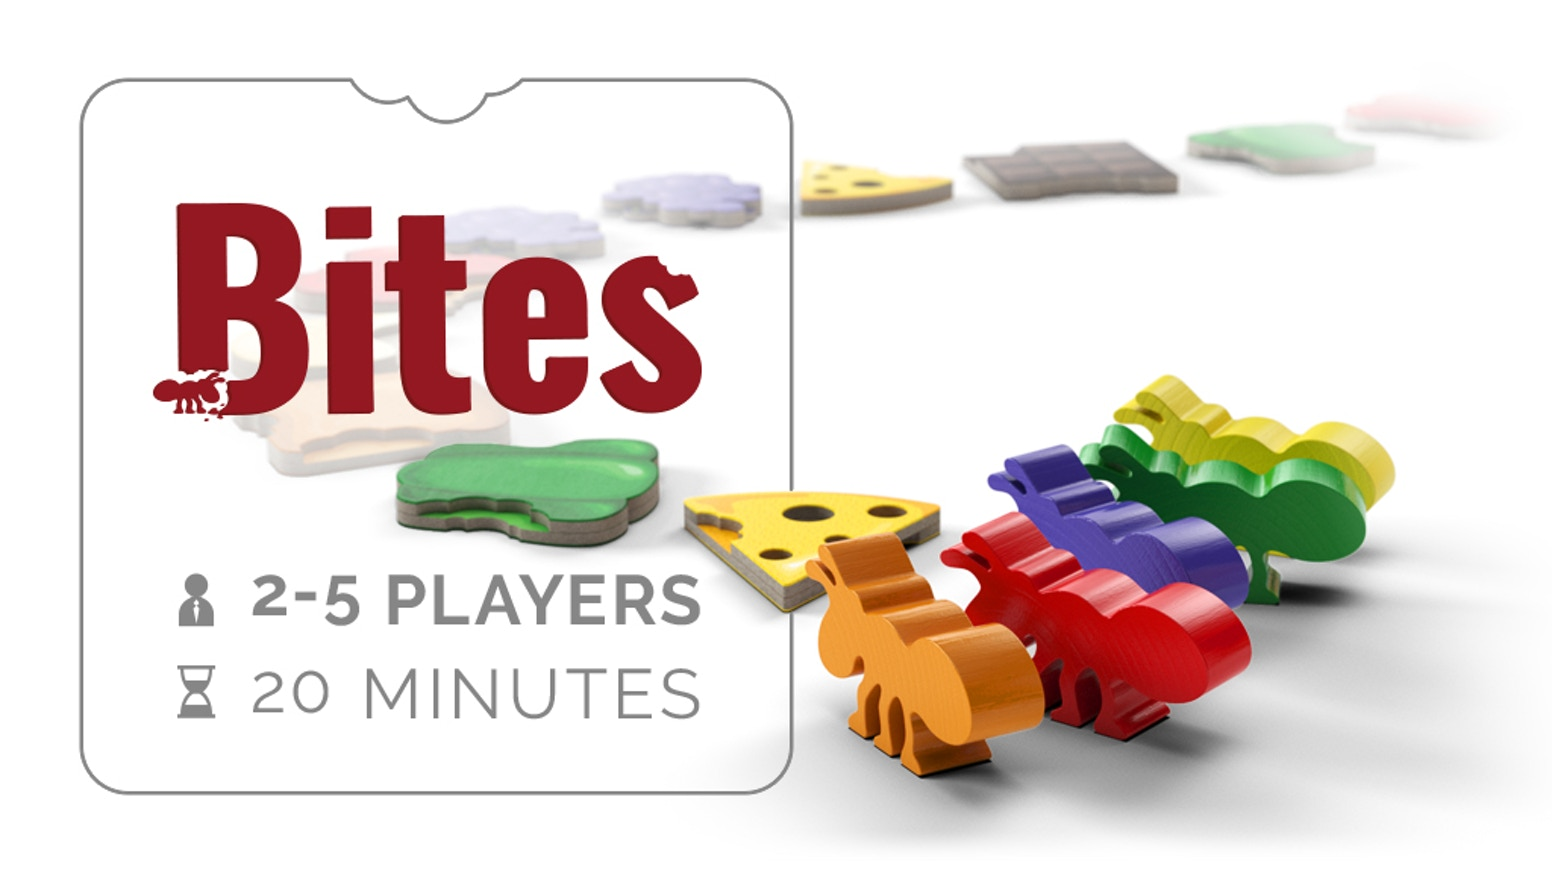 2-5 players. 4 page rulebook. Deceptively strategic.